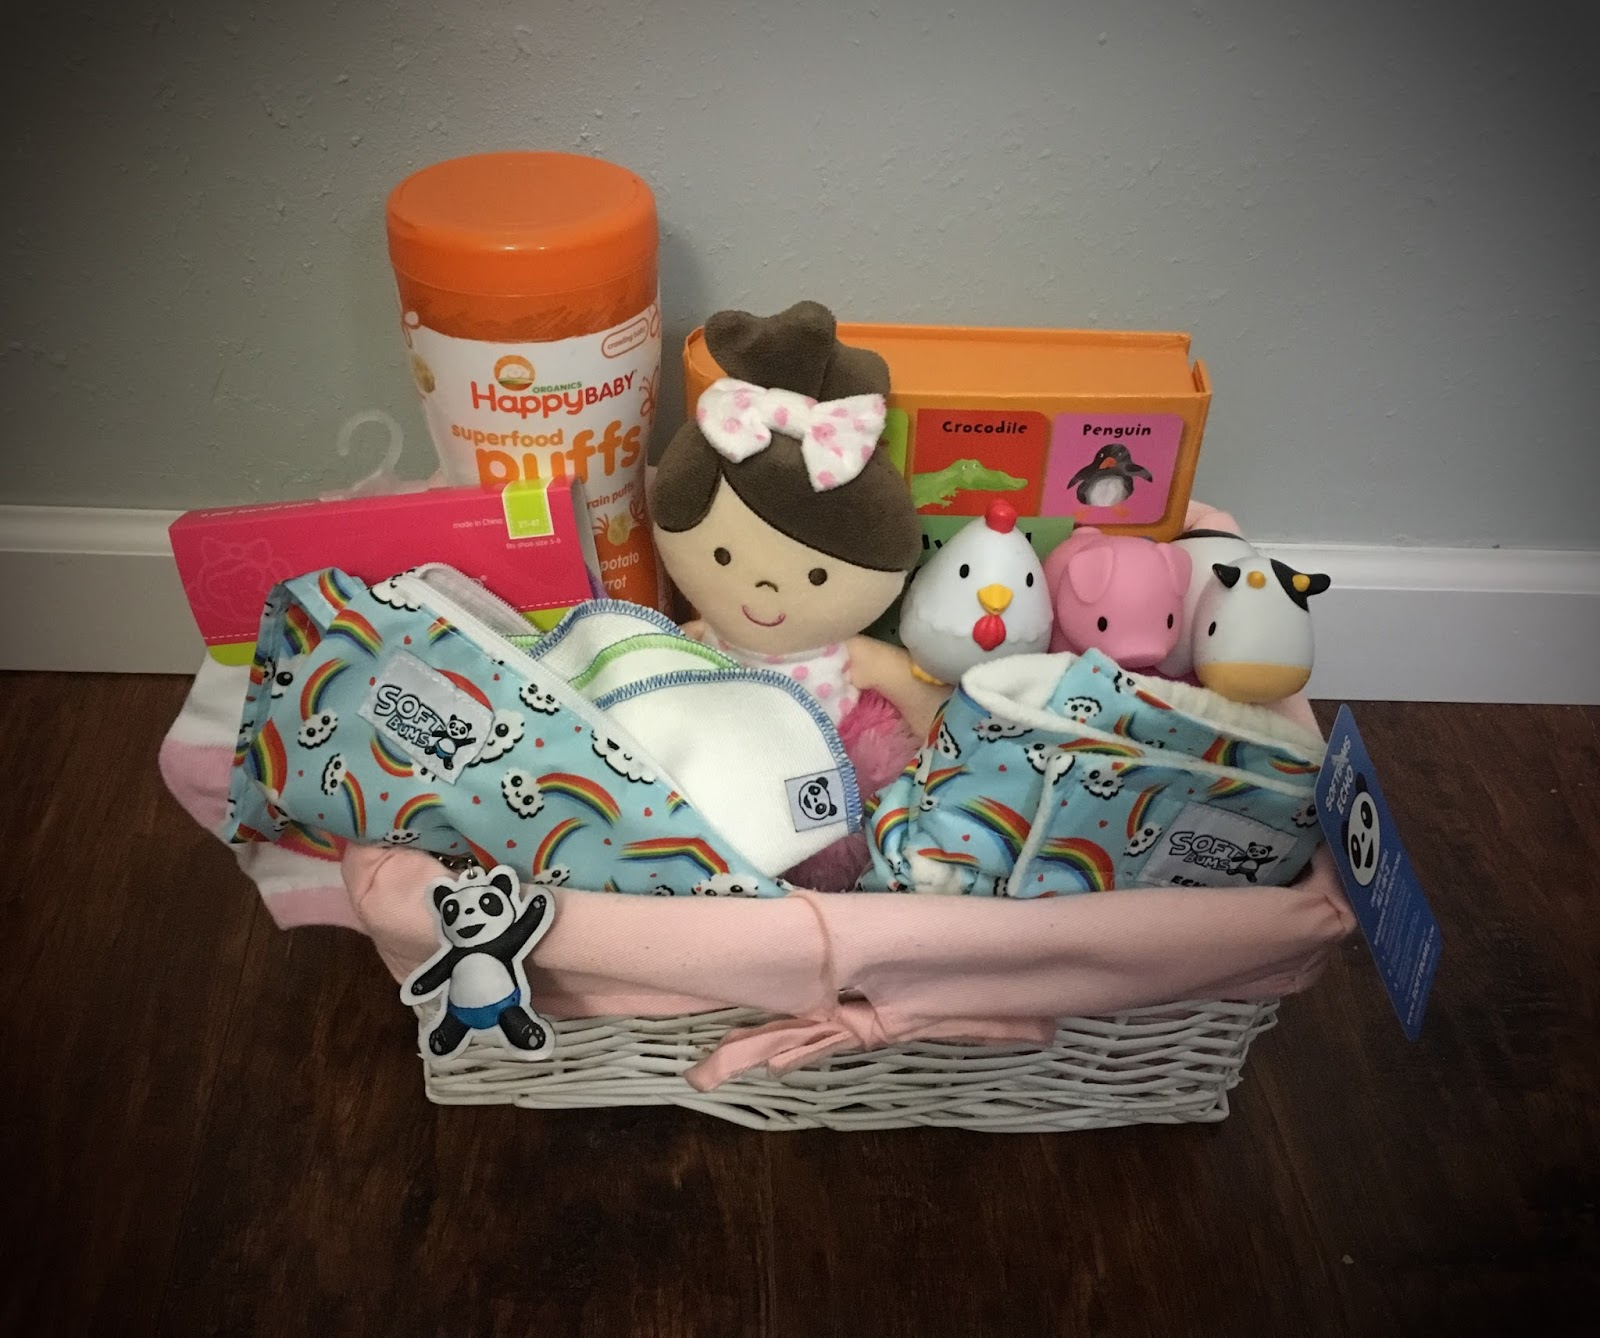 The softbums blog non candy easter basket ideas for your little one its easter time again and this year we are on a mission to create a cute basket that doesnt involve sweets heres a practical baby basket that your negle Gallery